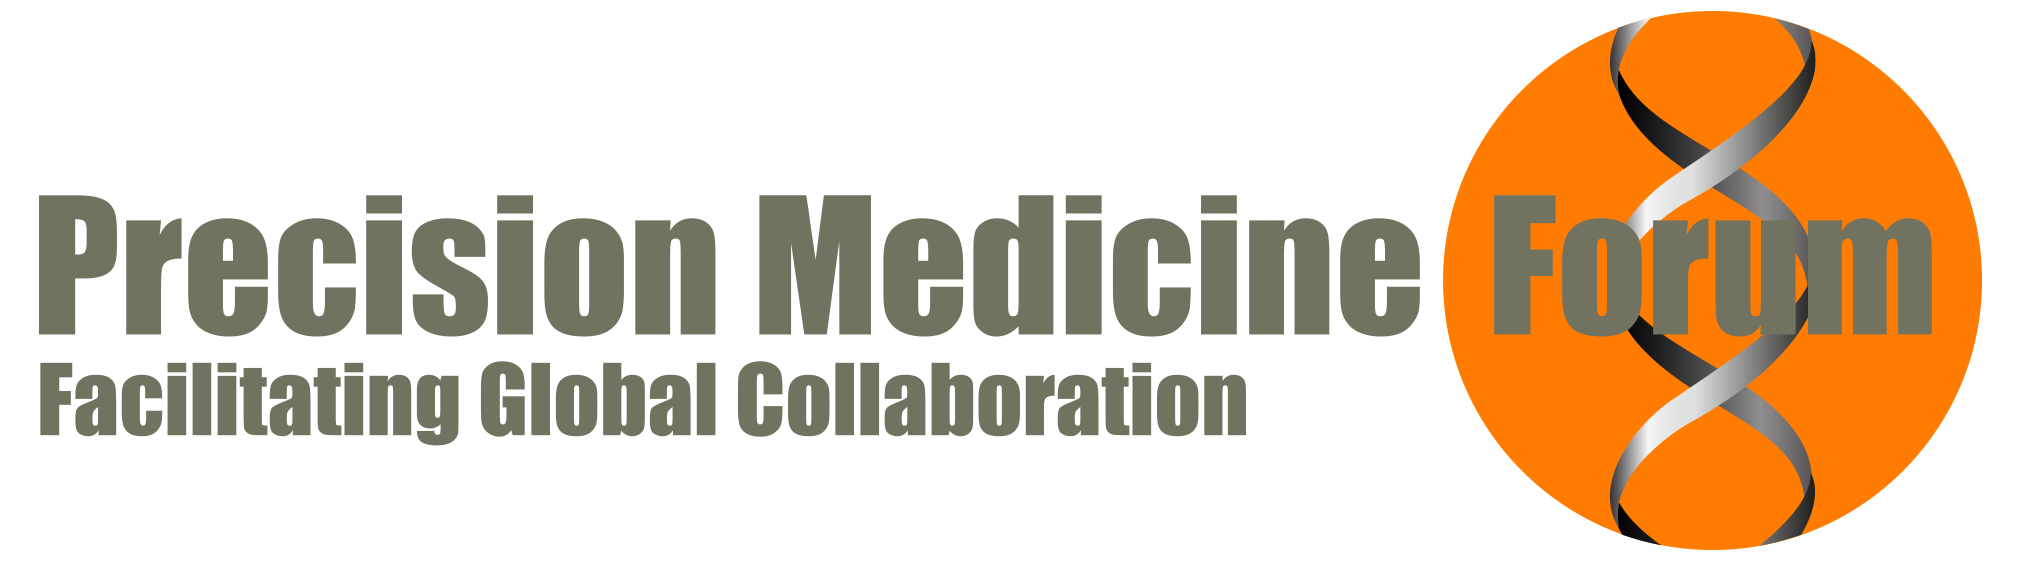 Precision Medicine Forum | Global Collaboration | Networking